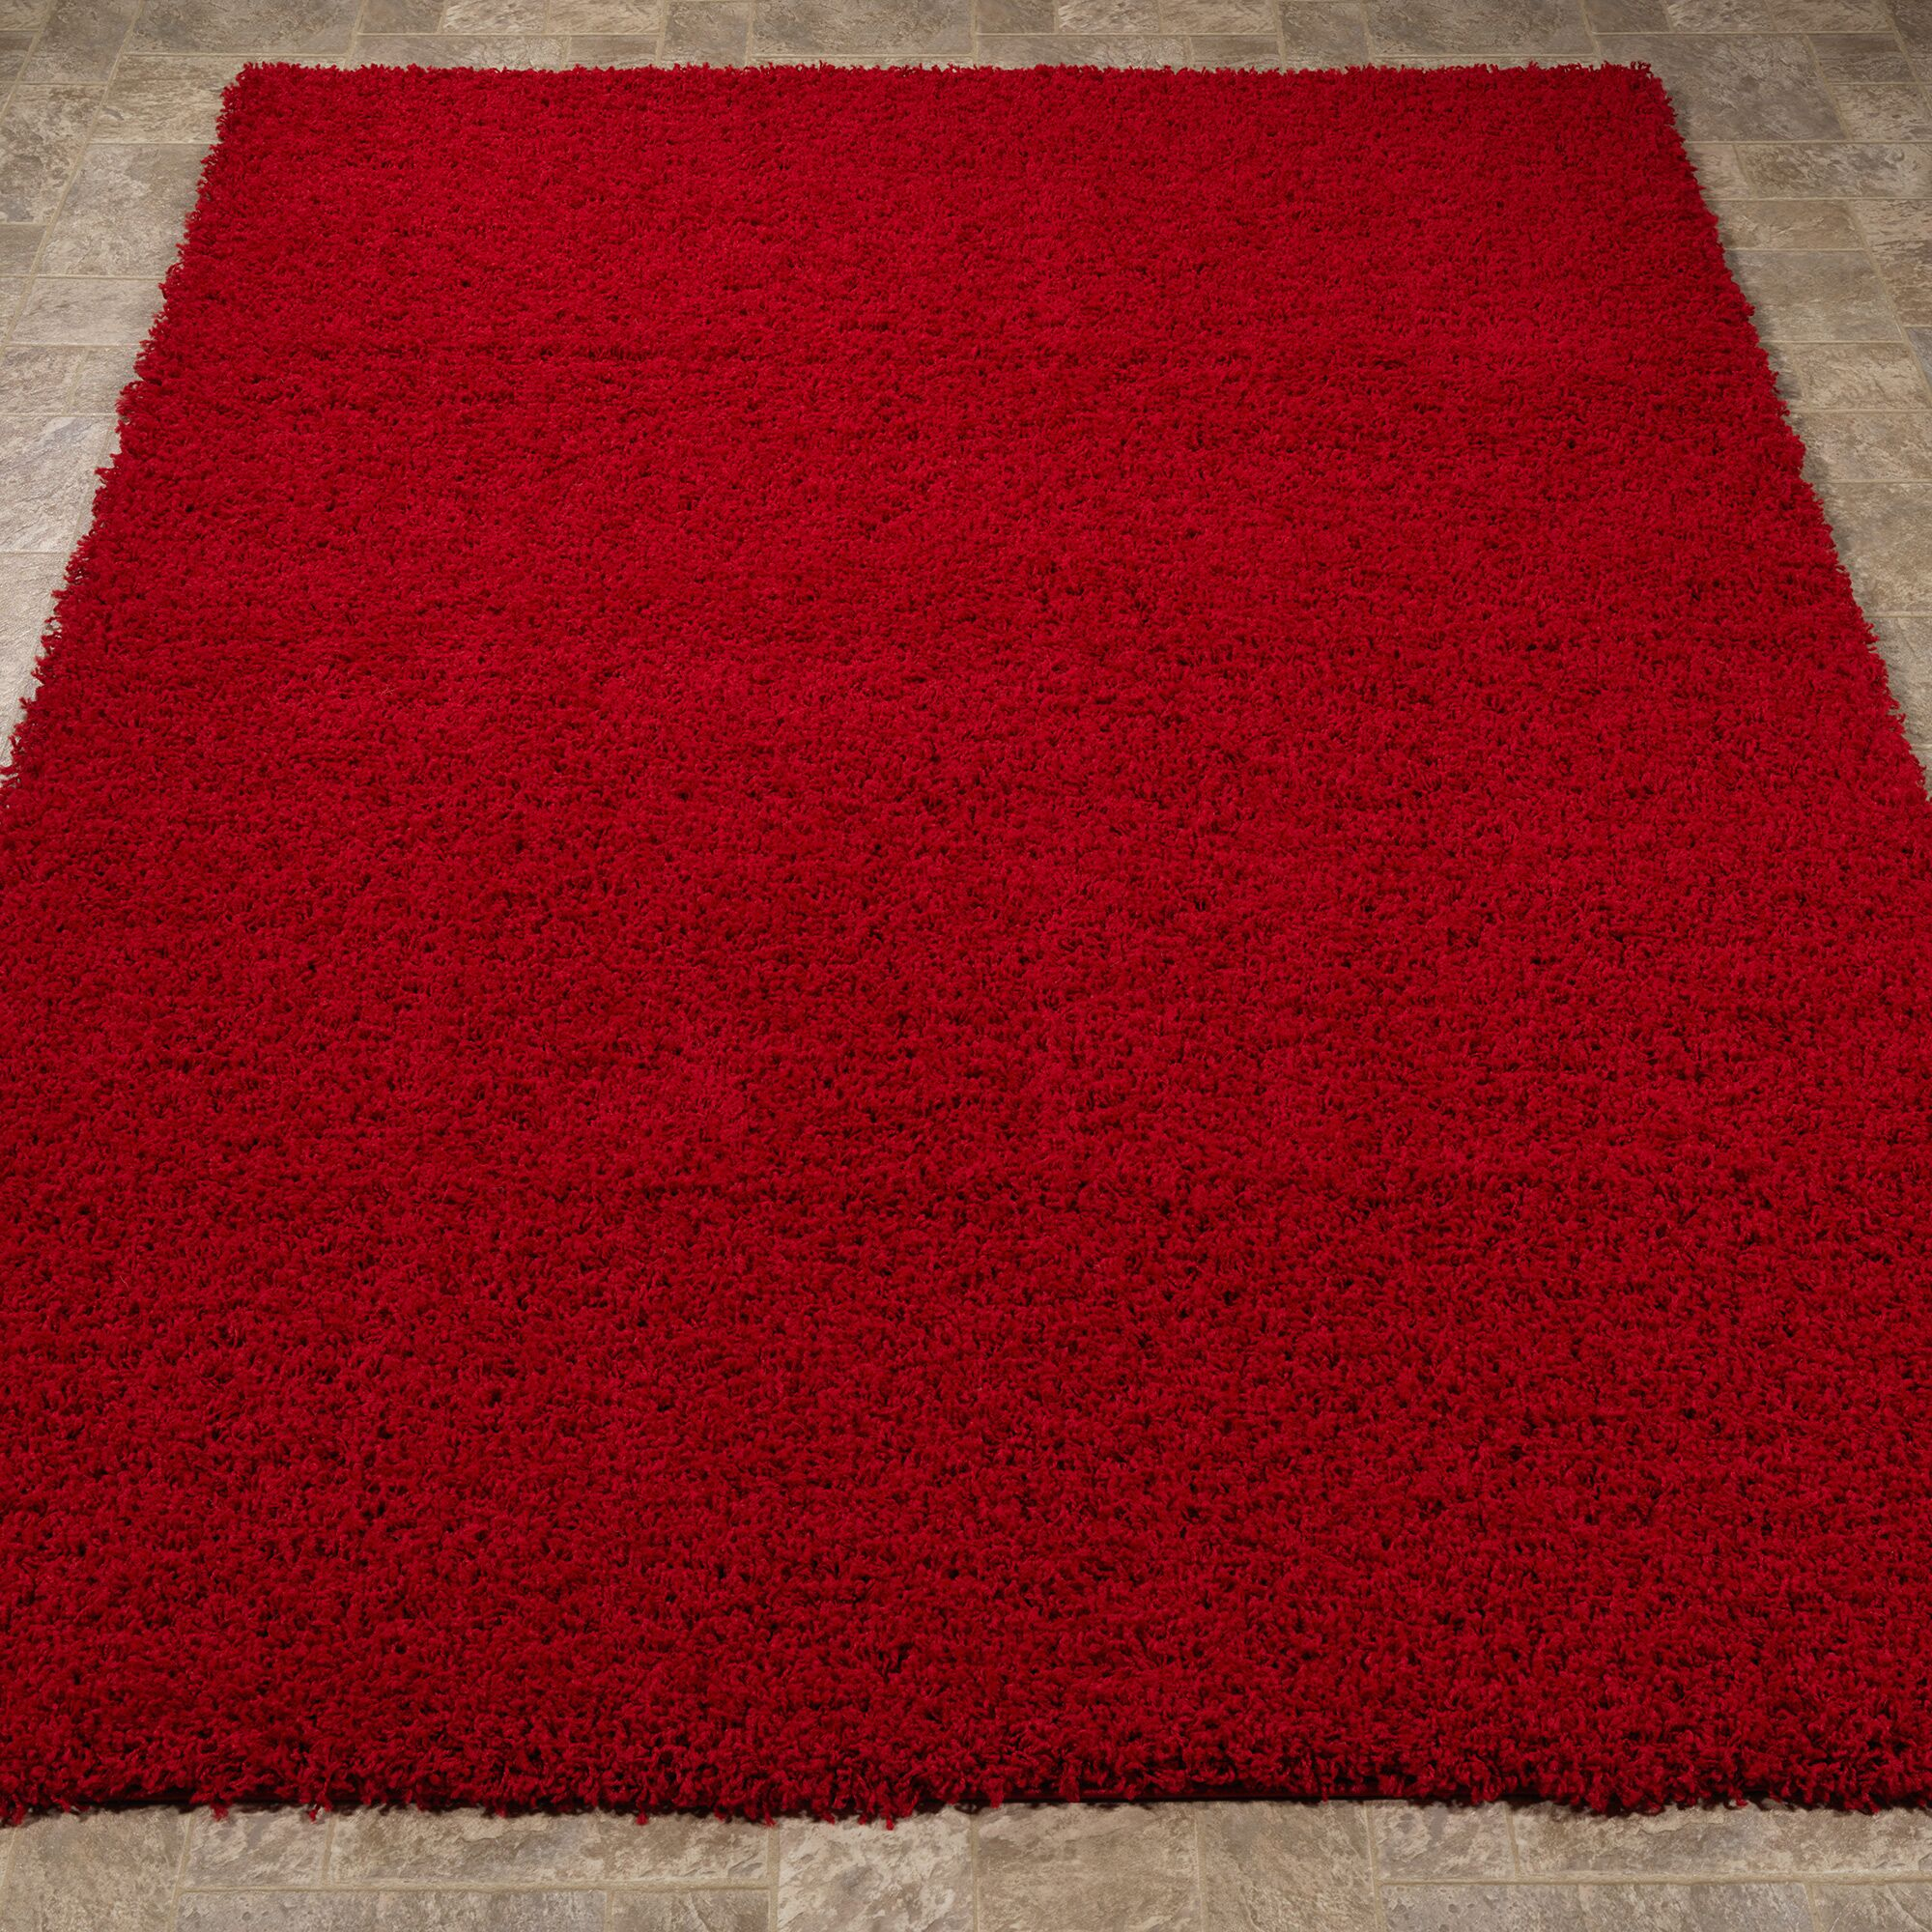 Cozy Red Area Rug Rug Size: 6'7